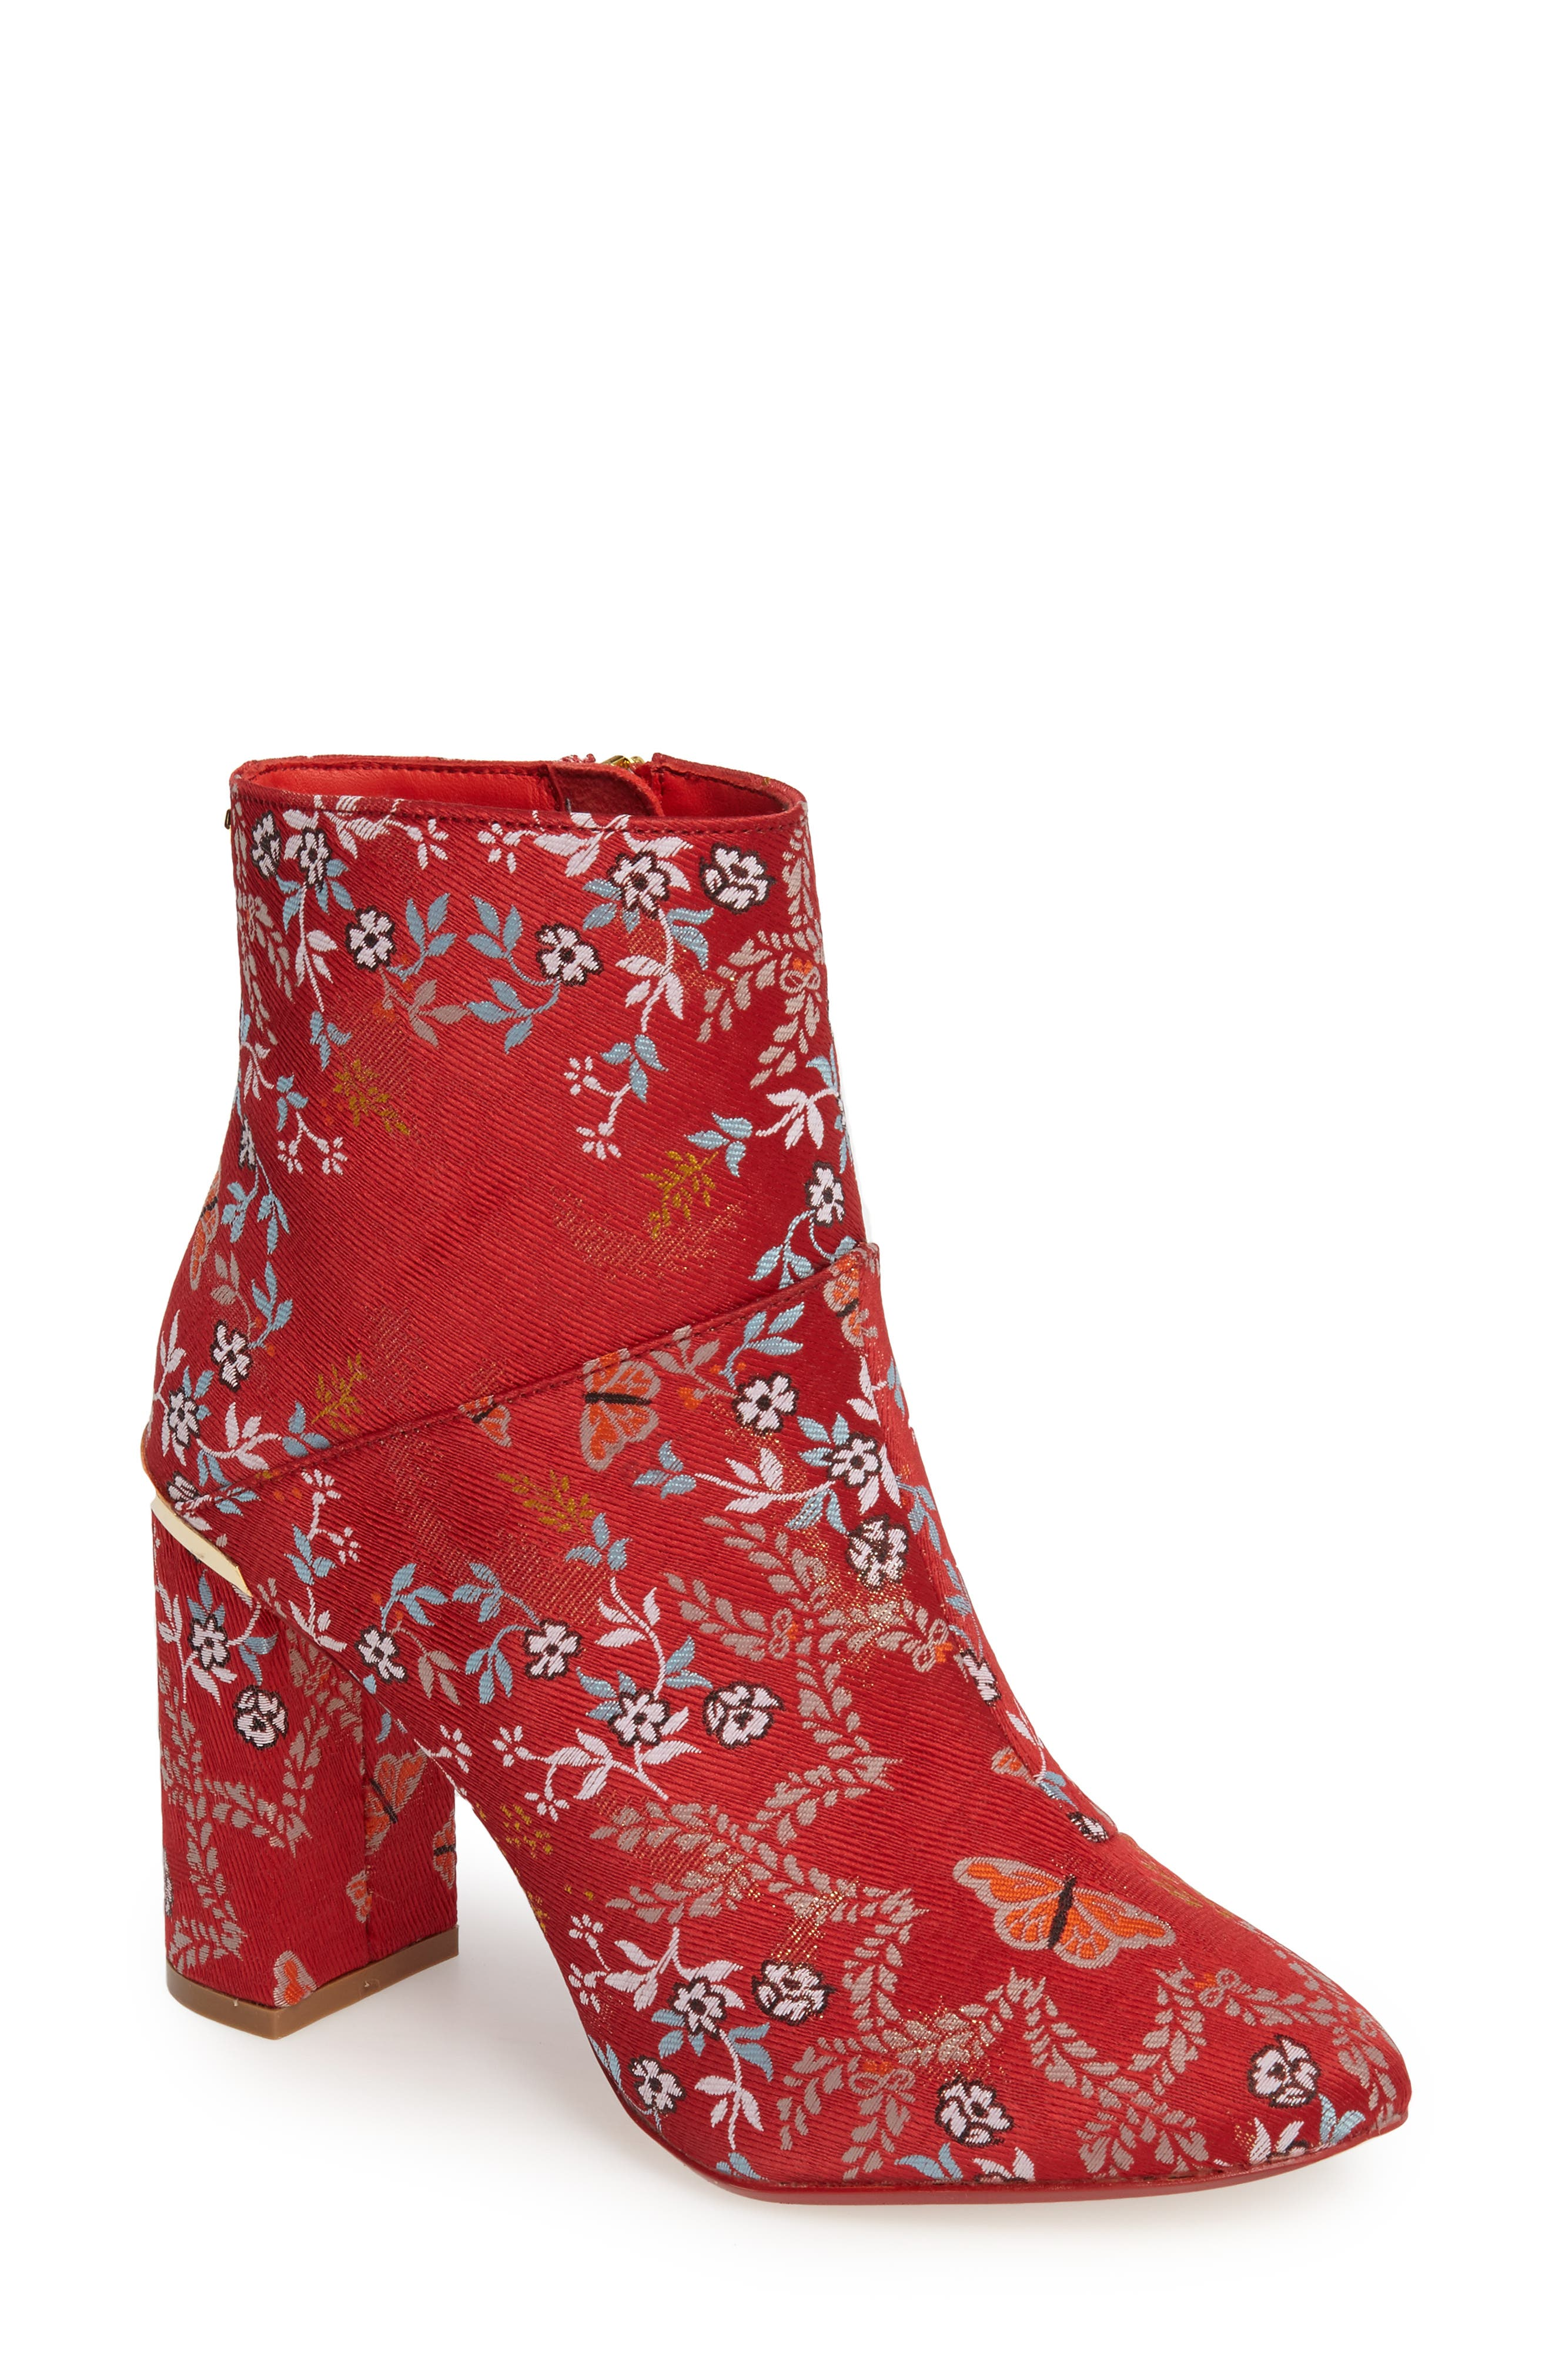 Ishbel Brocade Bootie,                         Main,                         color, Red Kyoto Print